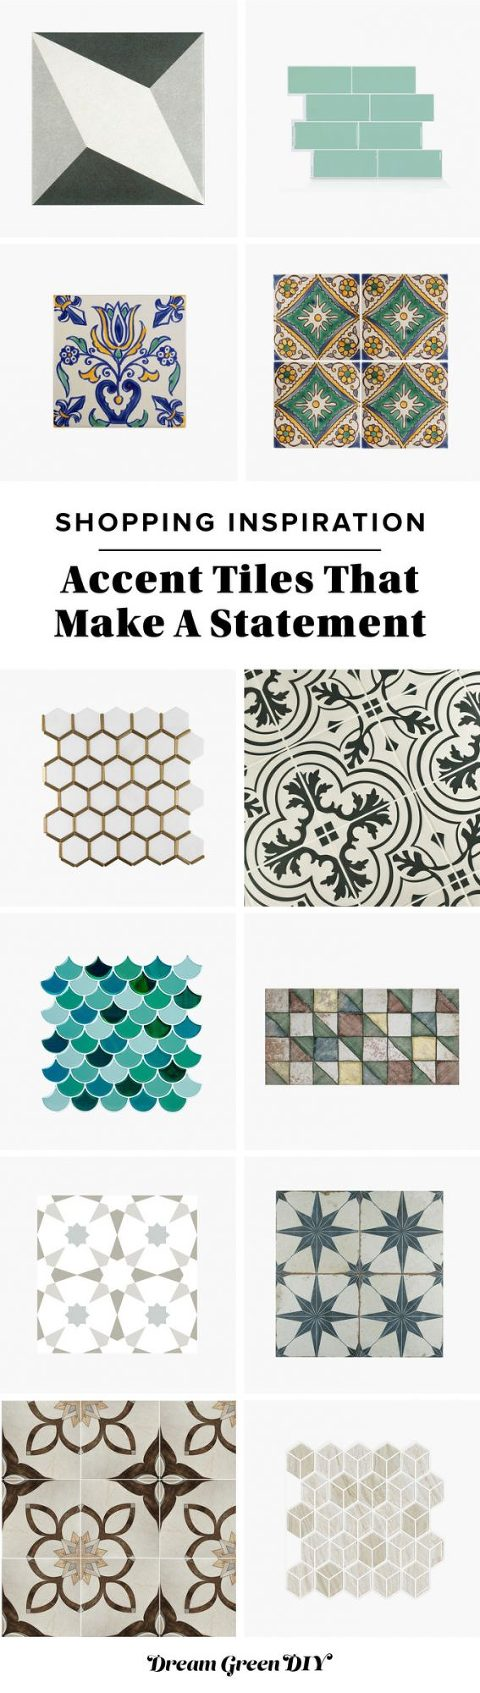 Accent Tiles That Make A Statement